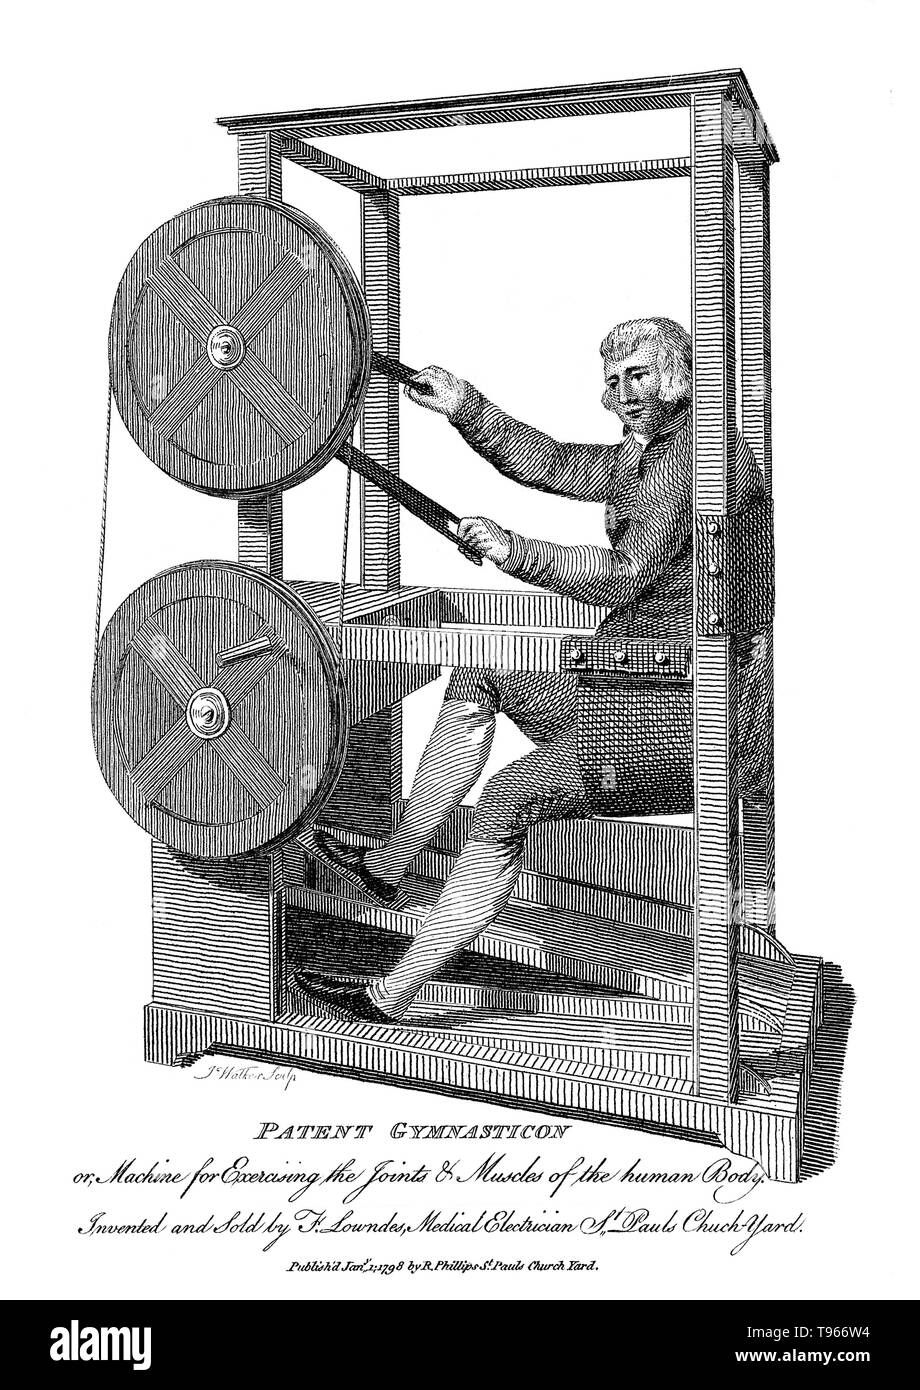 The Gymnasticon was an early exercise machine resembling a stationary bicycle, invented in 1796 by Francis Lowndes. In his patent, Lowndes described the machine as intended simply to give and apply motion and exercise, voluntary or involuntary, to the limbs, joints, and muscles of the human body. The Gymnasticon depended on a set of flywheels that connected the wooden treadles for the feet to cranks for the hands, which could drive each other or operate independently. It was an early example of a series of new technologies in gymnastics that would lead to the development of physical therapy in - Stock Image